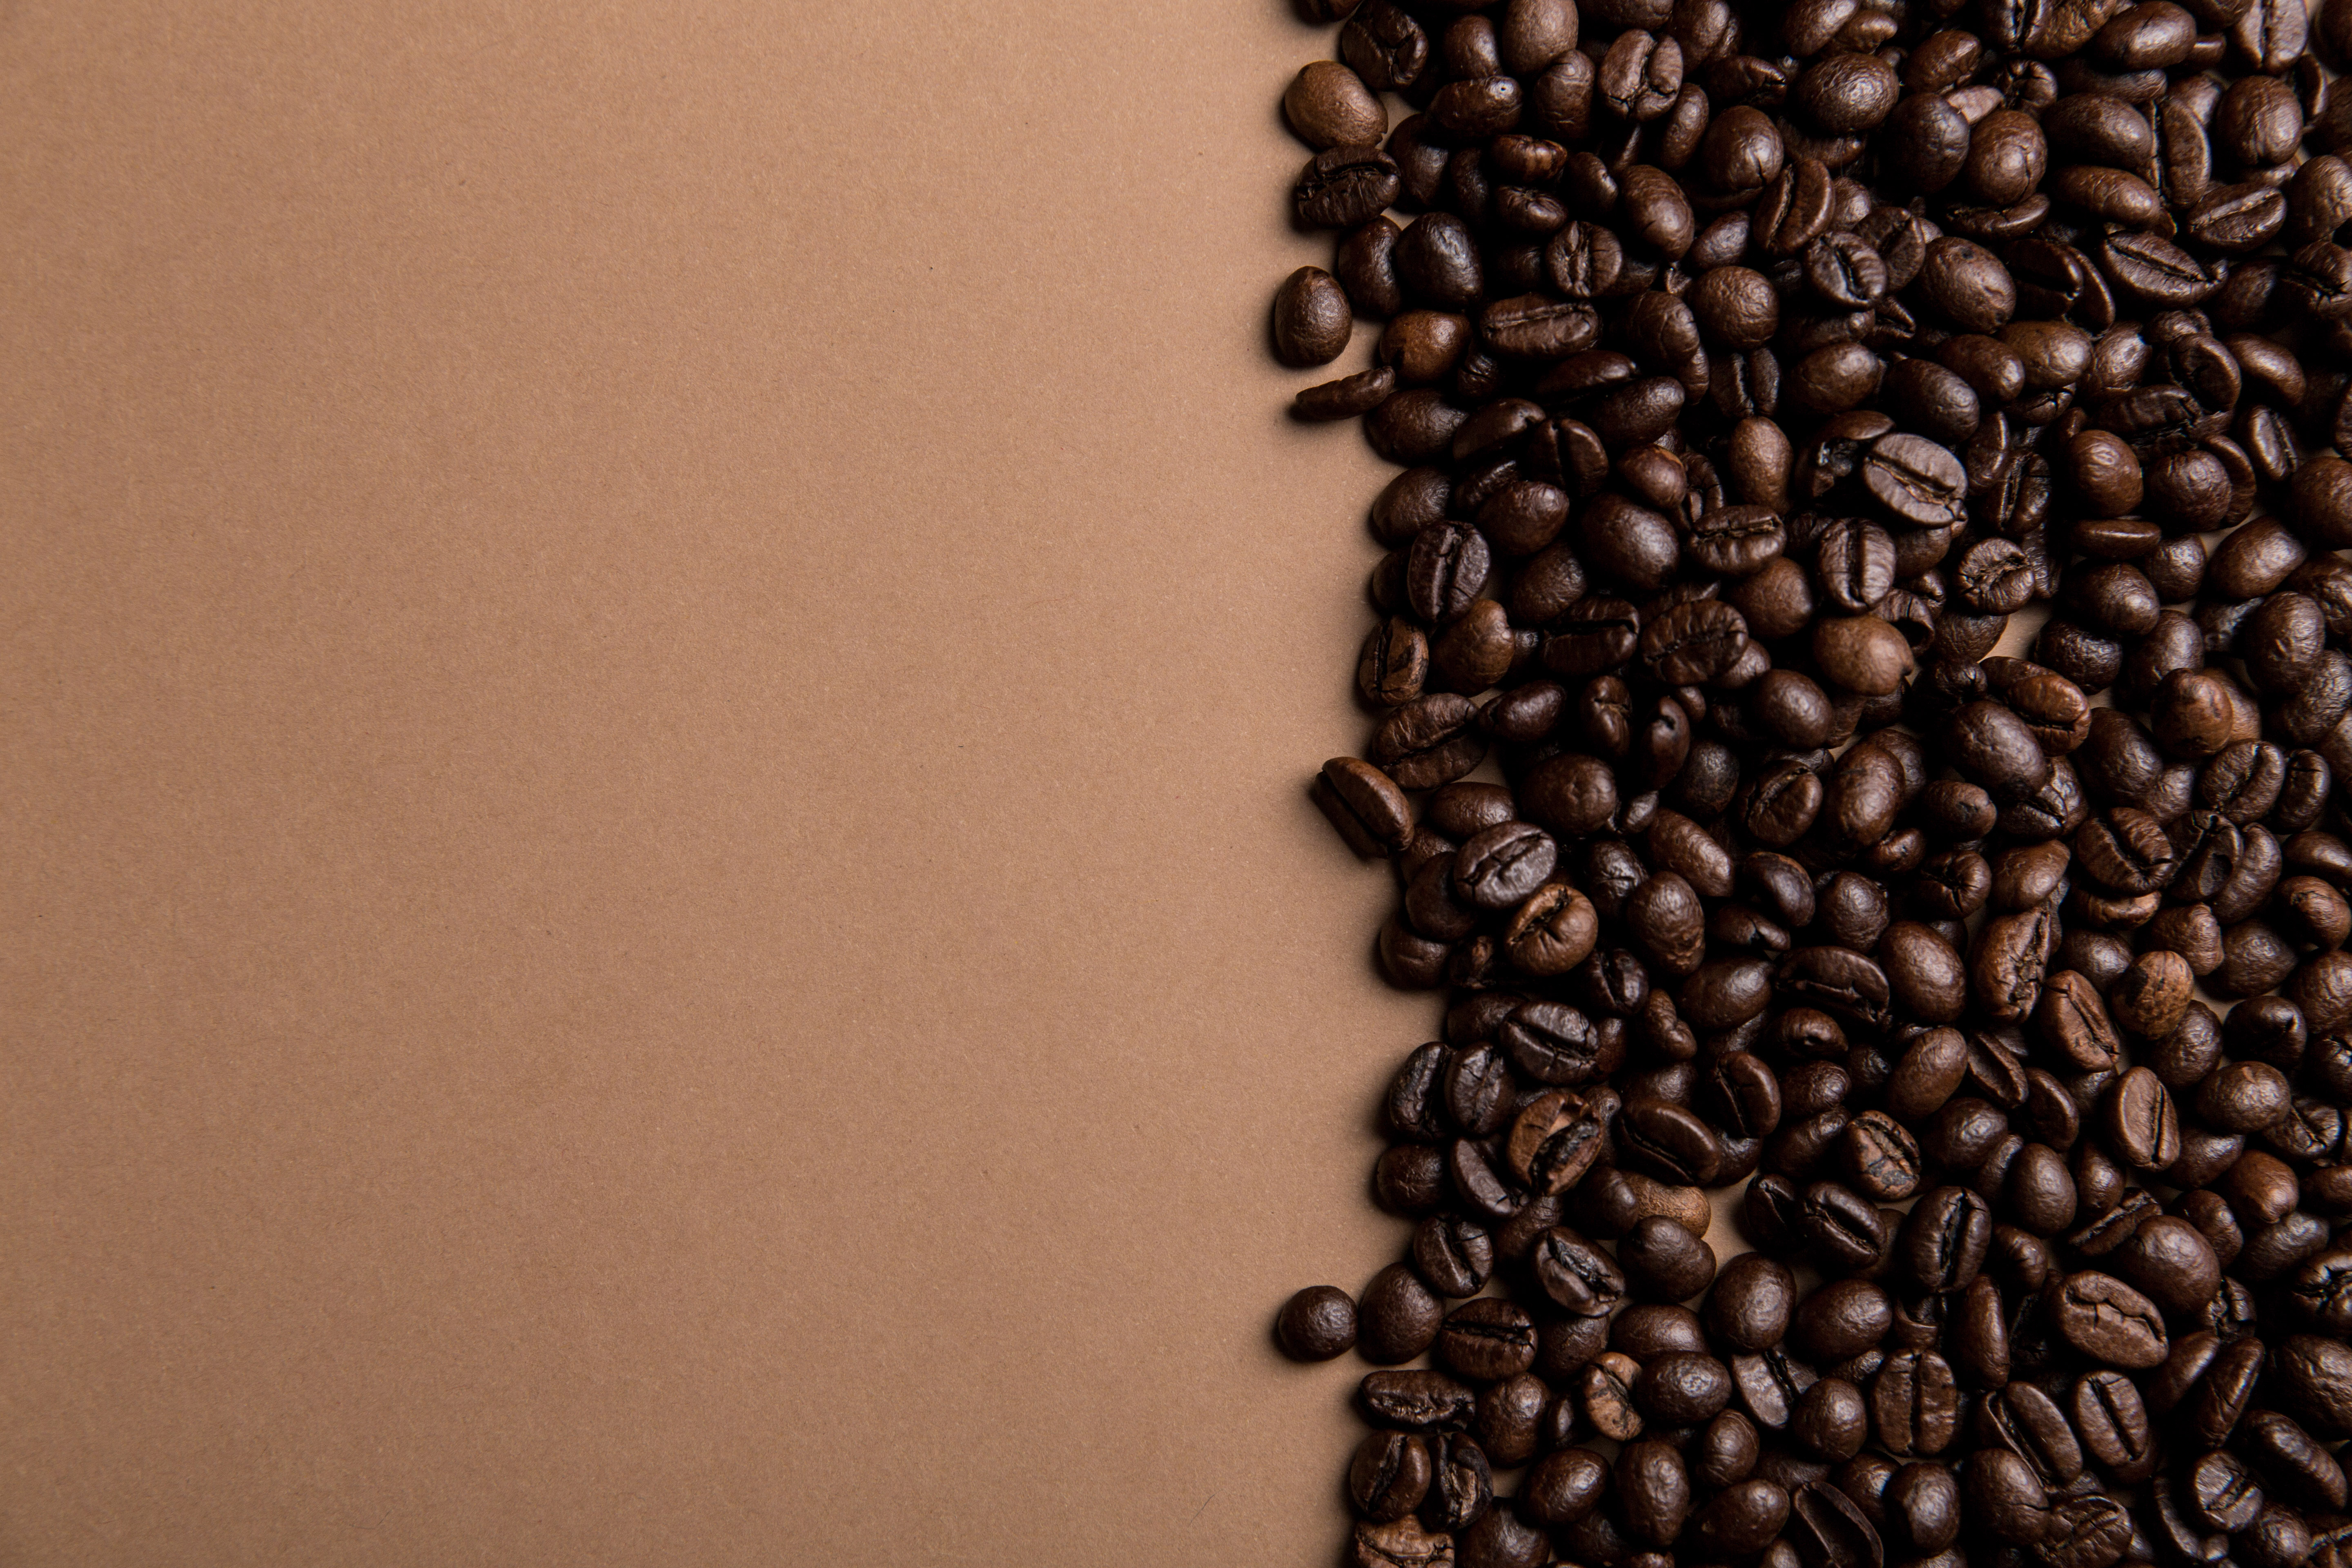 More Iphone Wallpapers 1000 Interesting Coffee Beans Photos 183 Pexels 183 Free